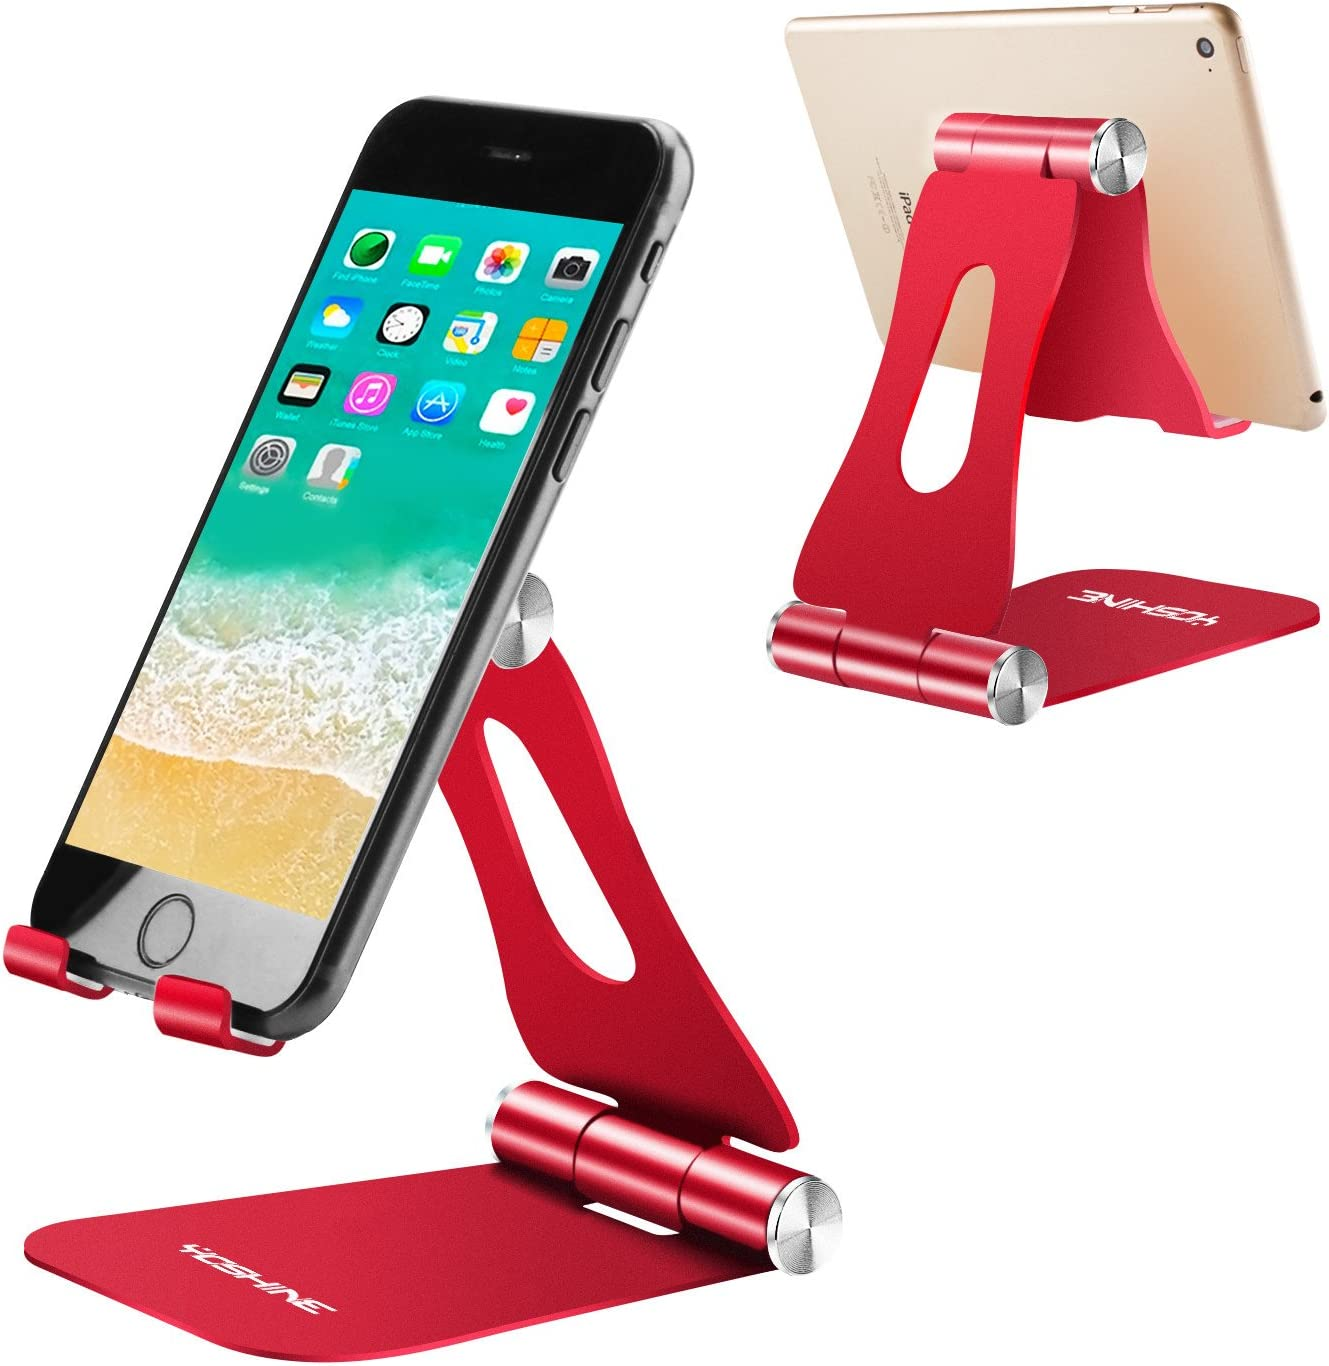 Adjustable Cell Phone Stand,YOSHINE Cell Phone Holder Compatible for iPhone&iPad Desktop Phone Tablet Stand with Anti-Slip Base & Convenient Charging Port Universal Stand for All Smartphones & Tablets